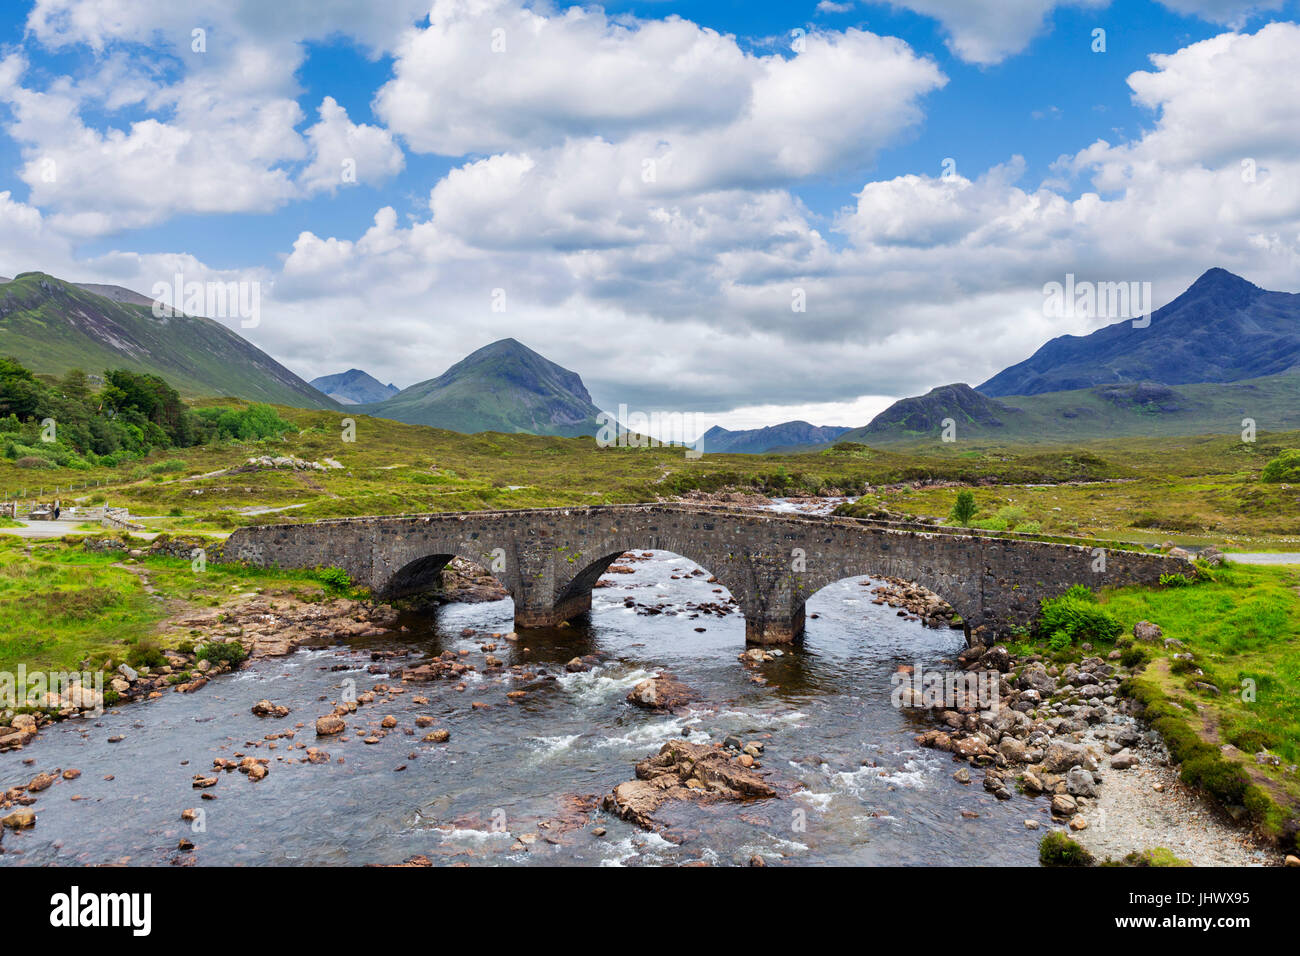 Sligachan Old Bridge looking towards the Cuillin mountain range, Isle of Skye, Highland, Scotland, UK - Stock Image